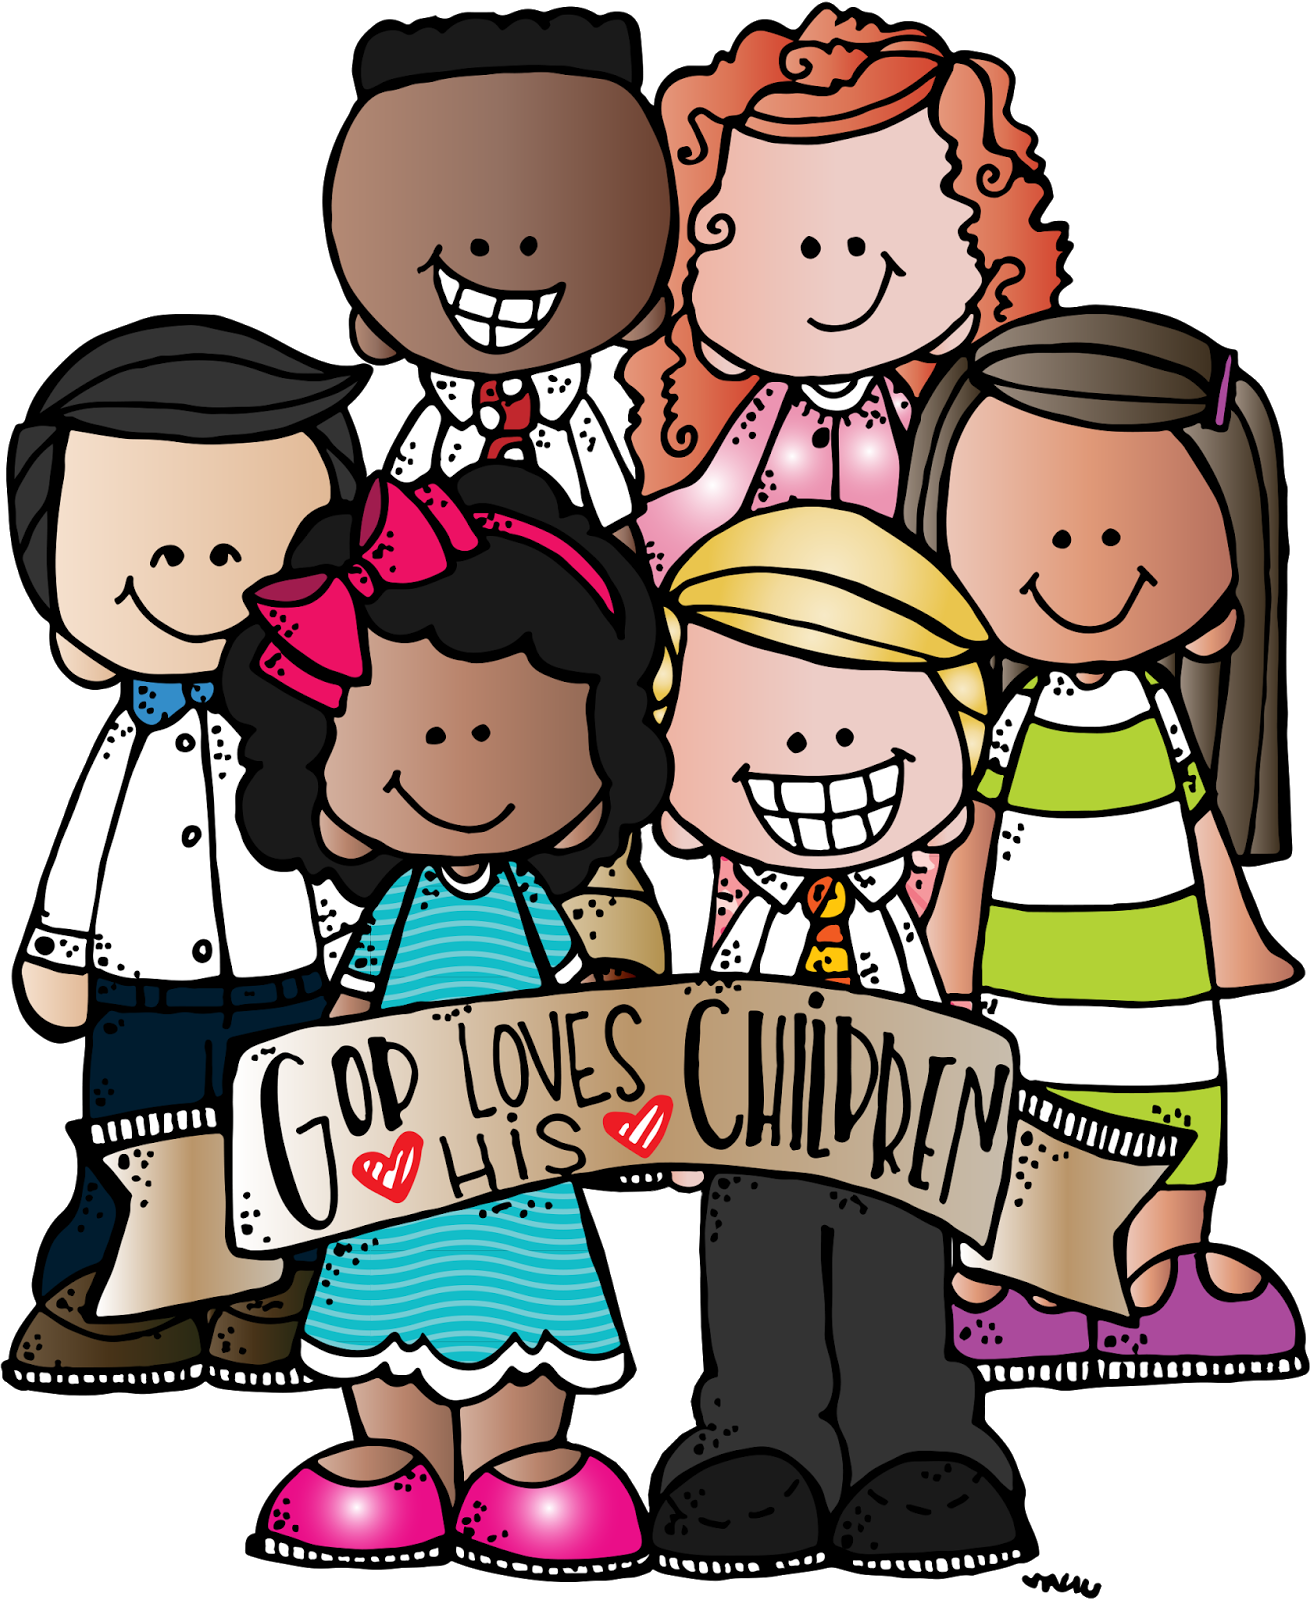 Lds clipart children's. Melonheadz illustrating primary helps